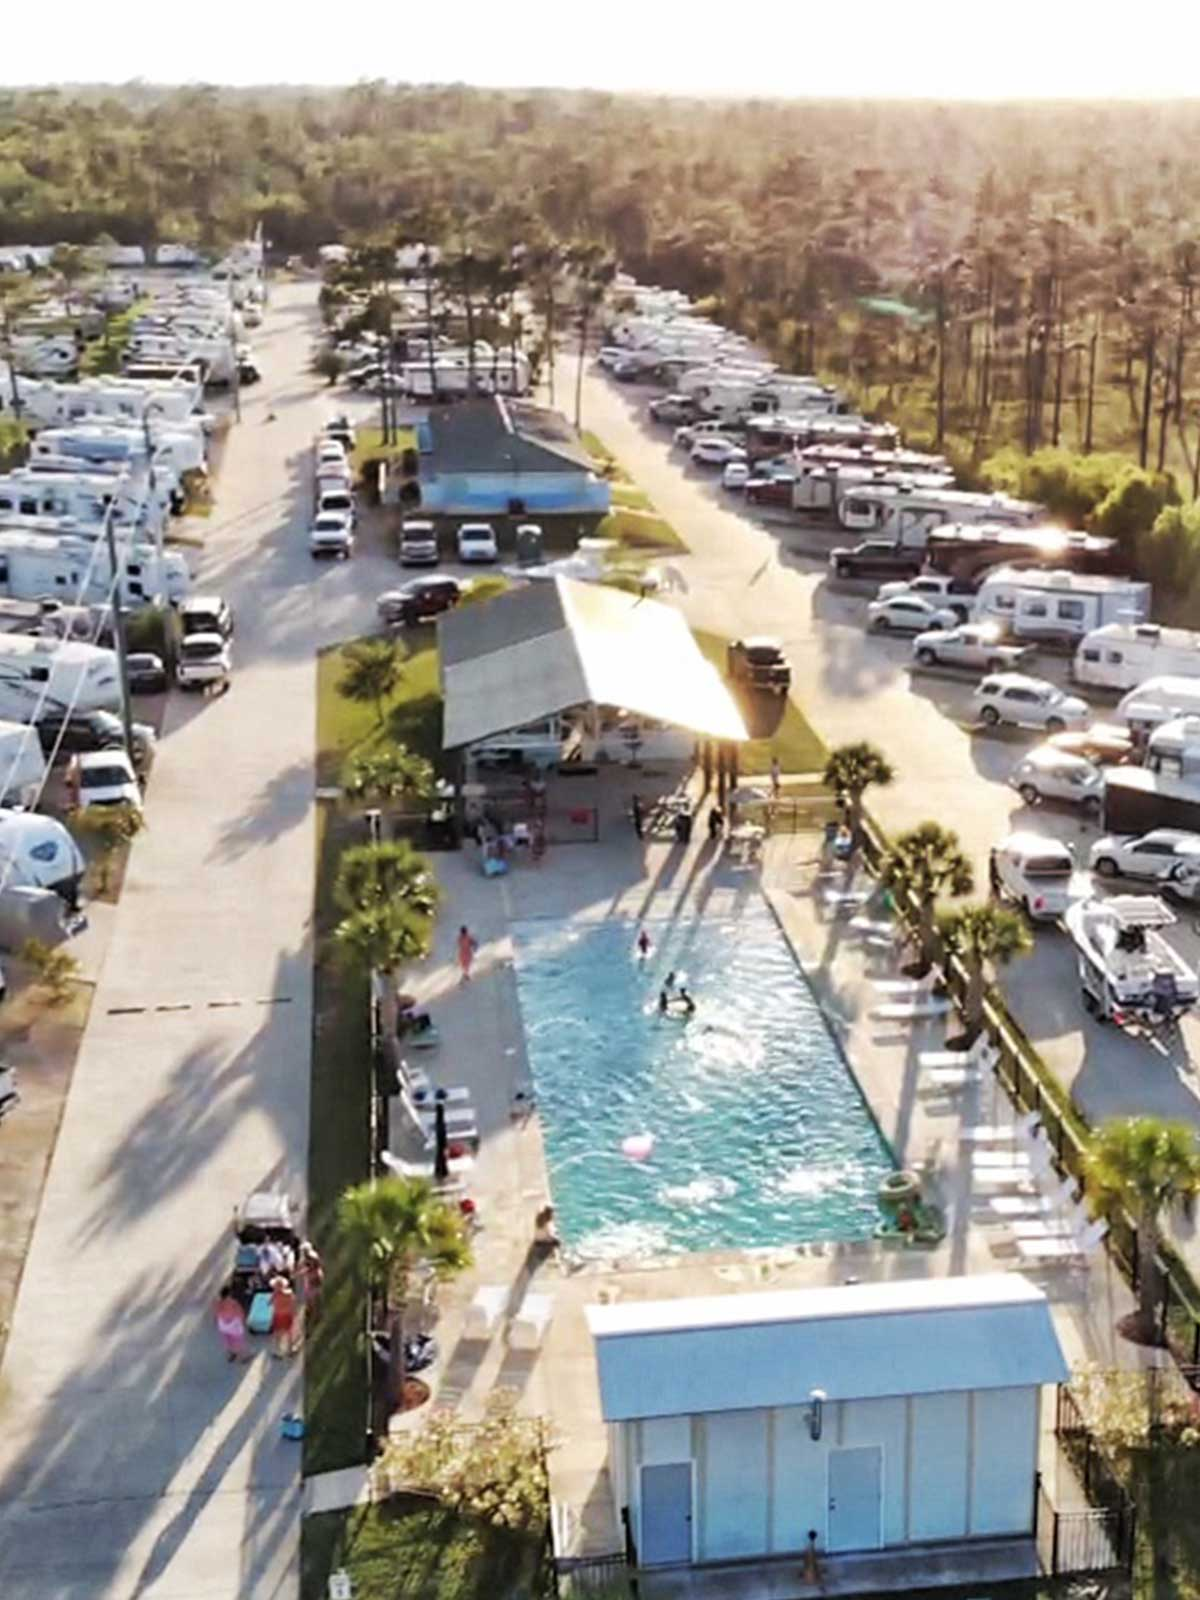 Dauphin Island arial view of Bay Palms RV park